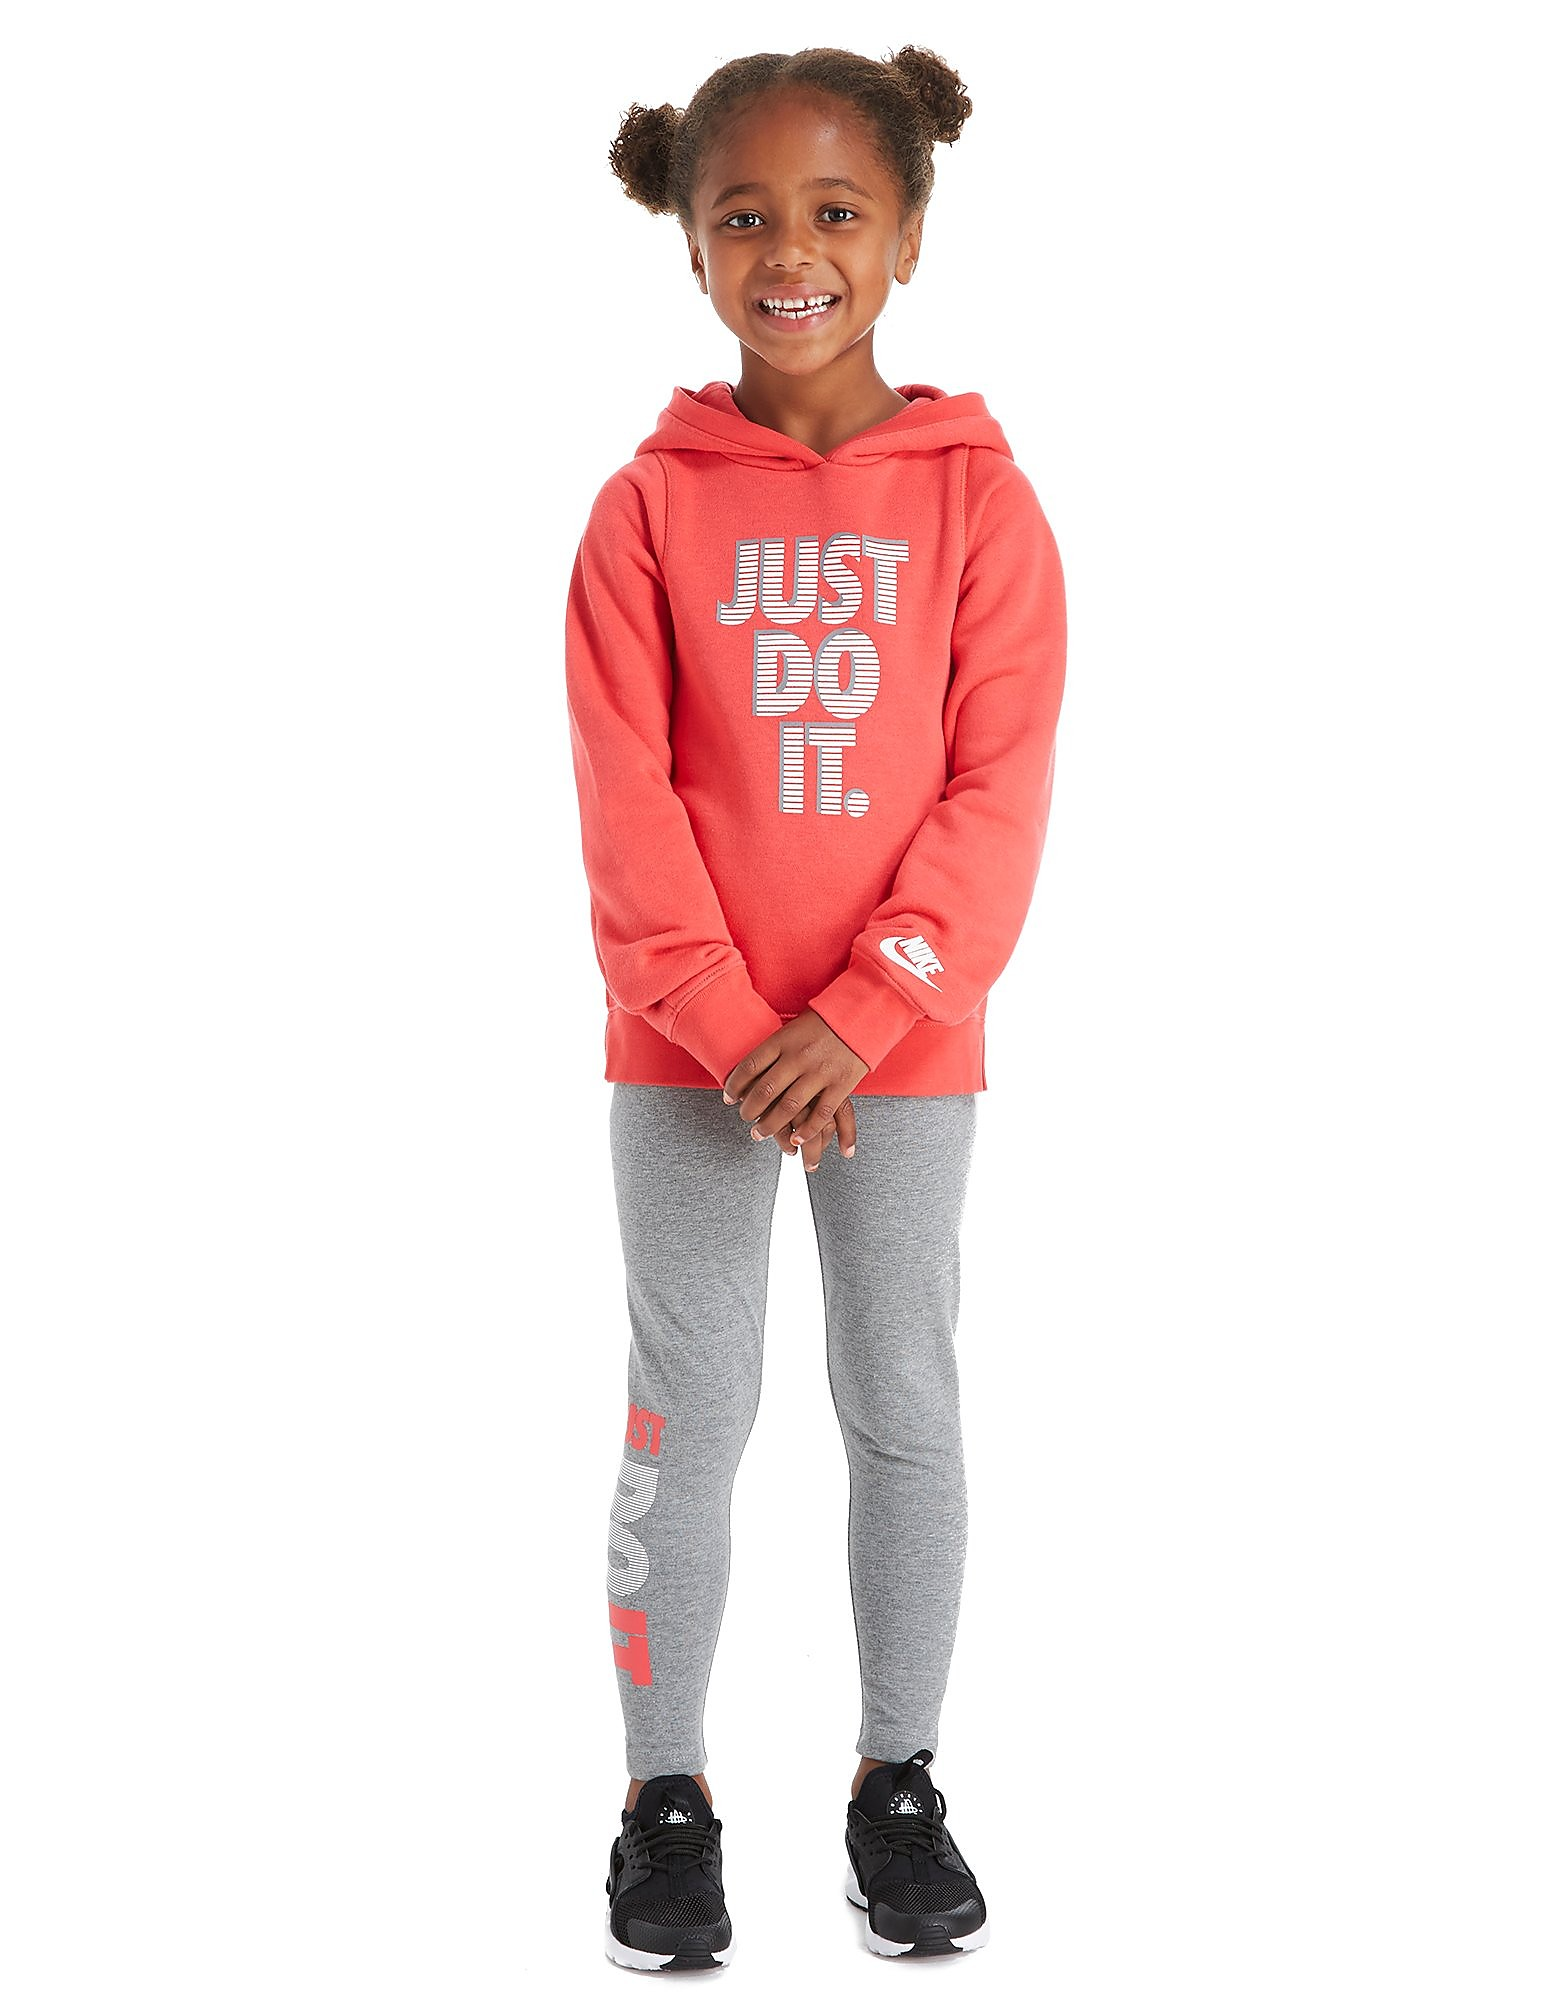 Nike Just Do It Hoody and Legging Set Girls